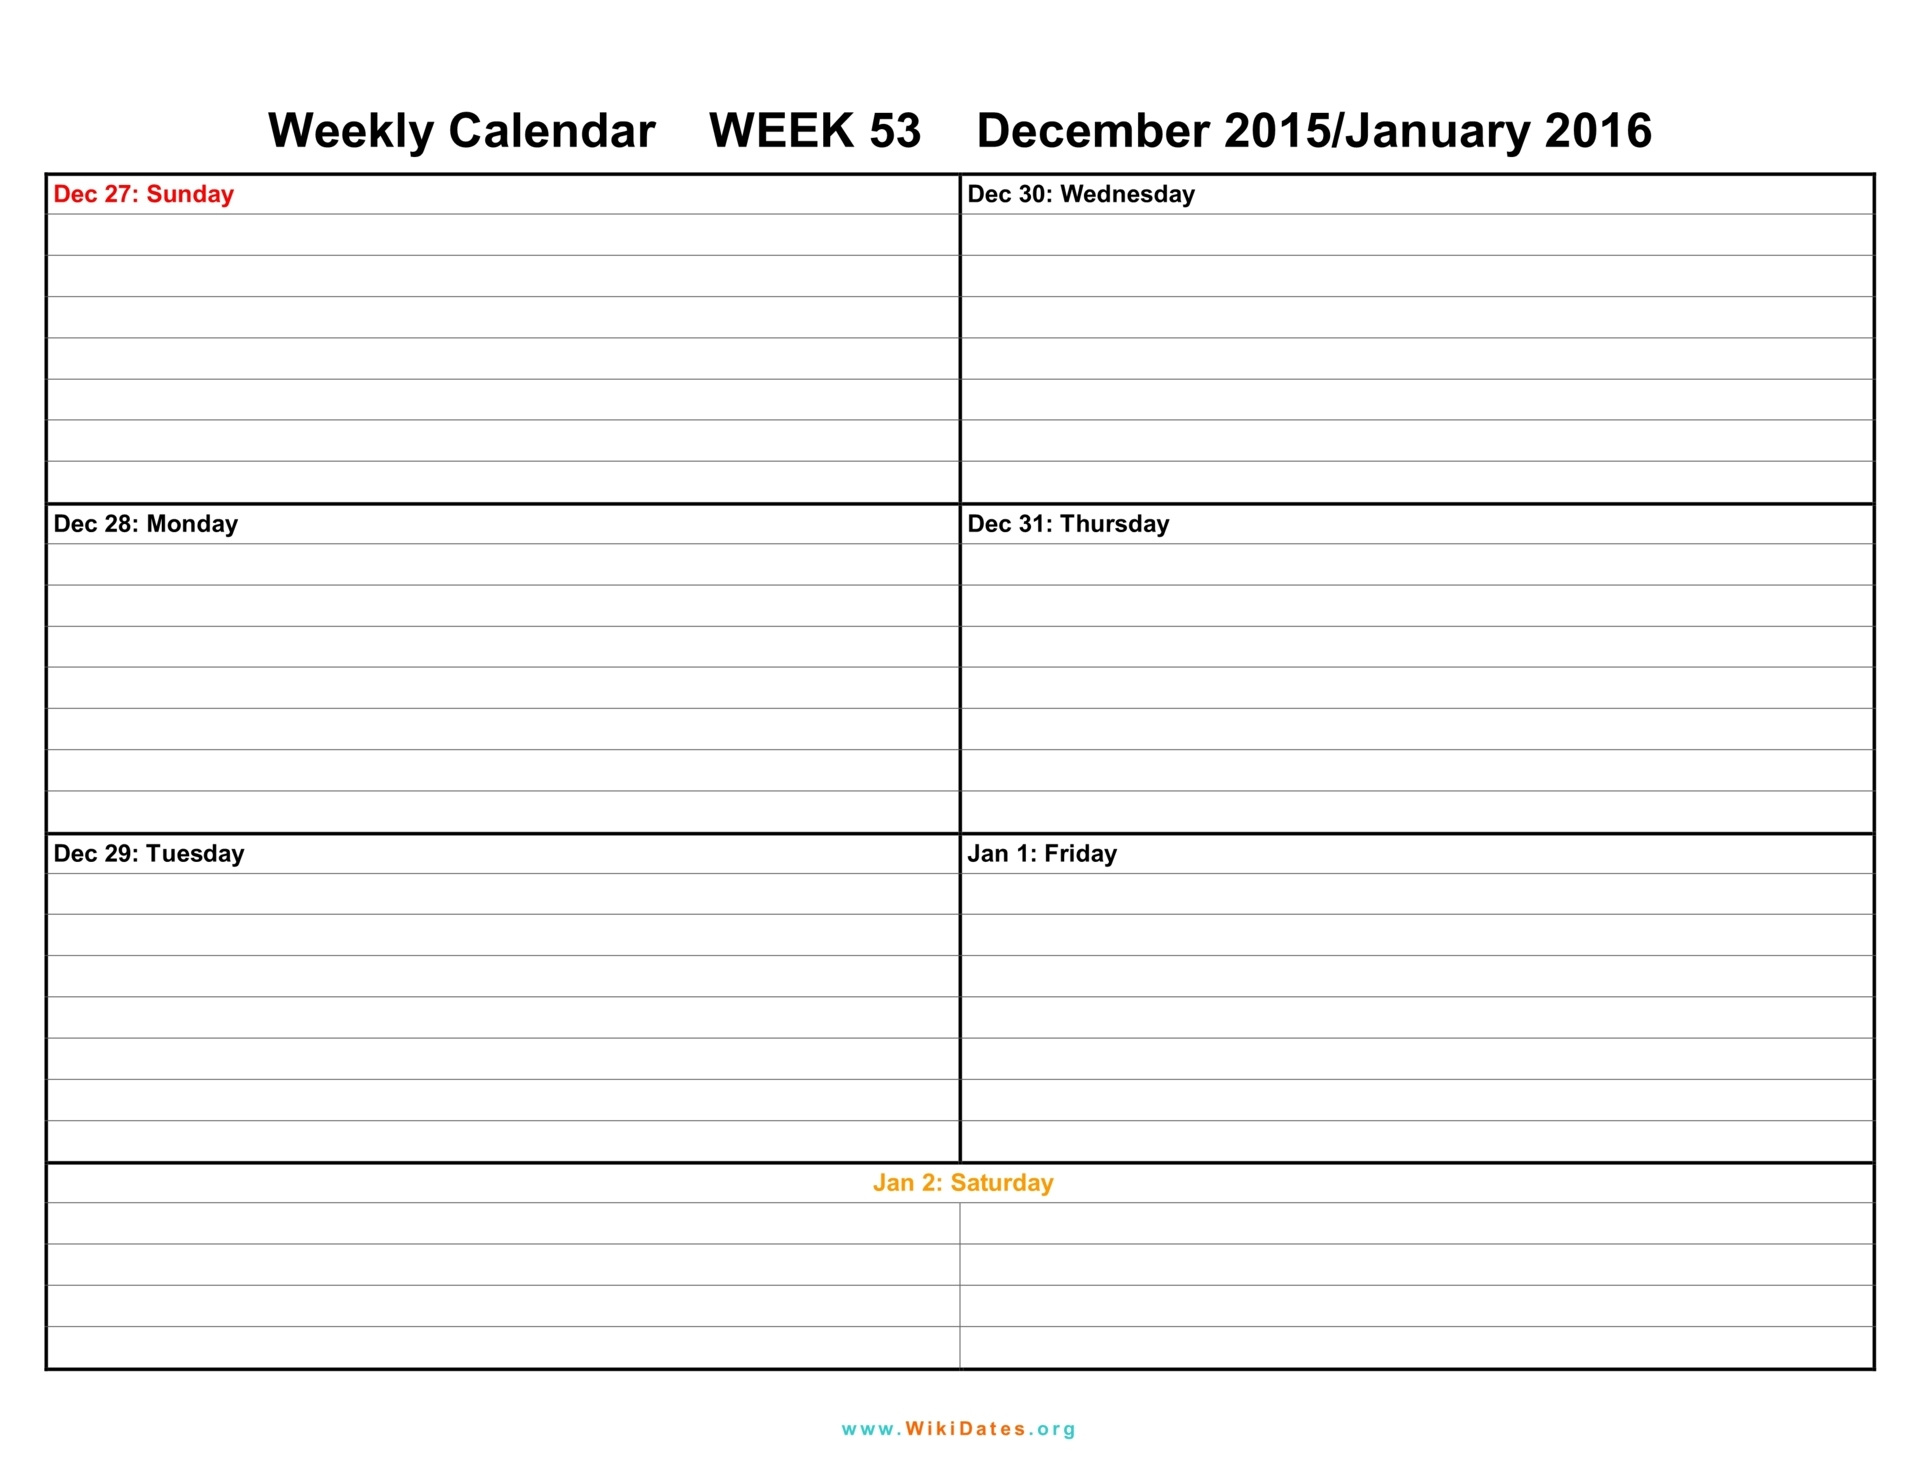 004 Weekly Calendar Templates Template Unusual 2016 Ideas Free throughout One Week Calendar Template Printable